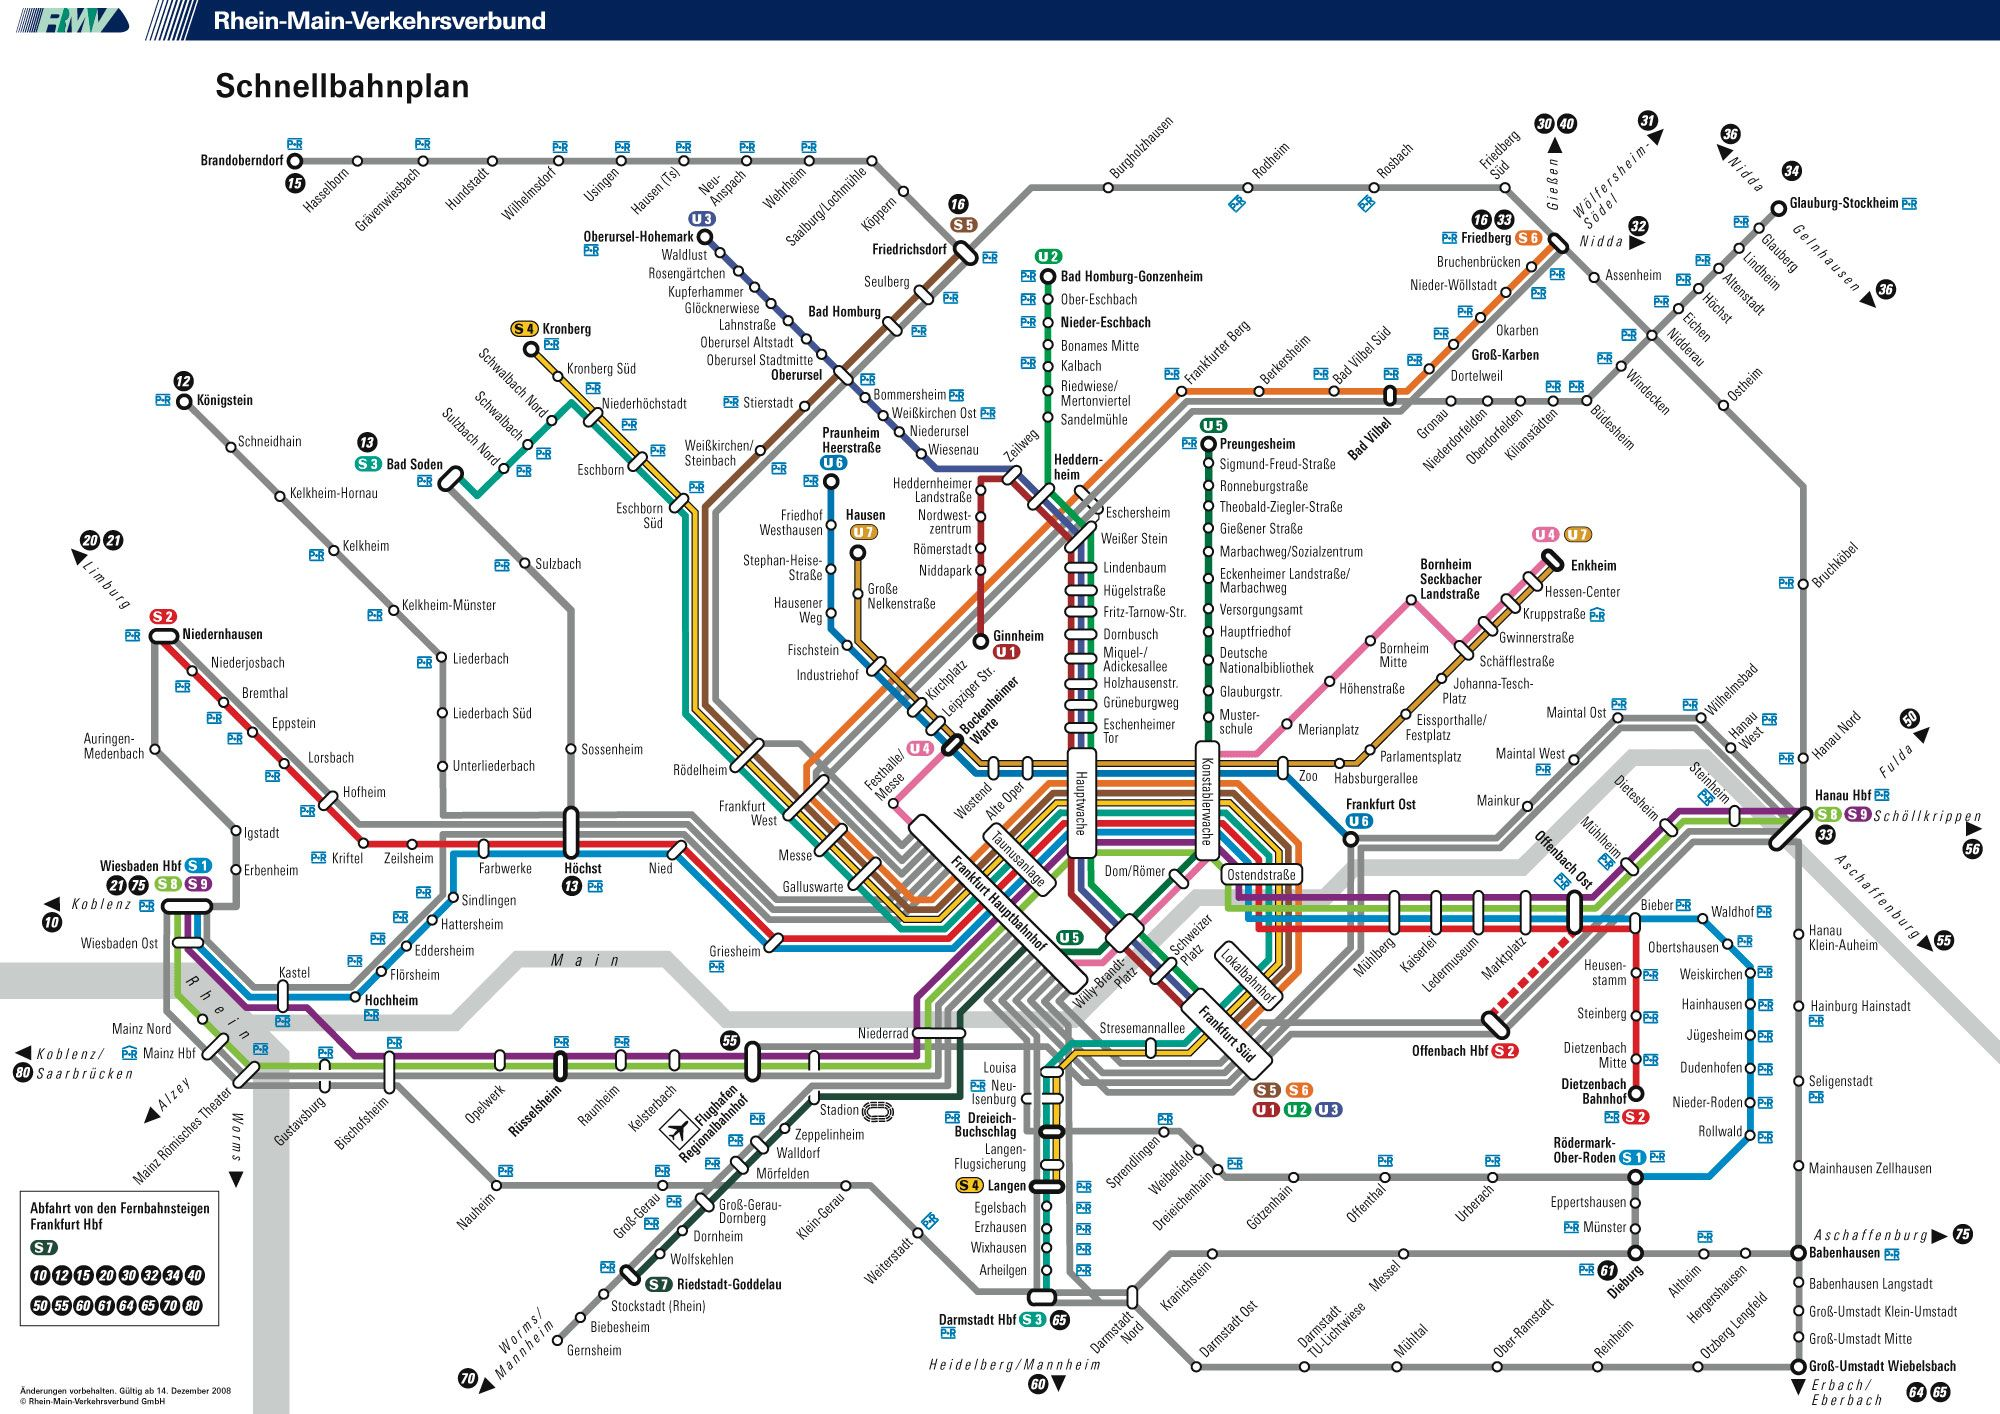 Frankfurt Metro Transportation Maps Pinterest Frankfurt and